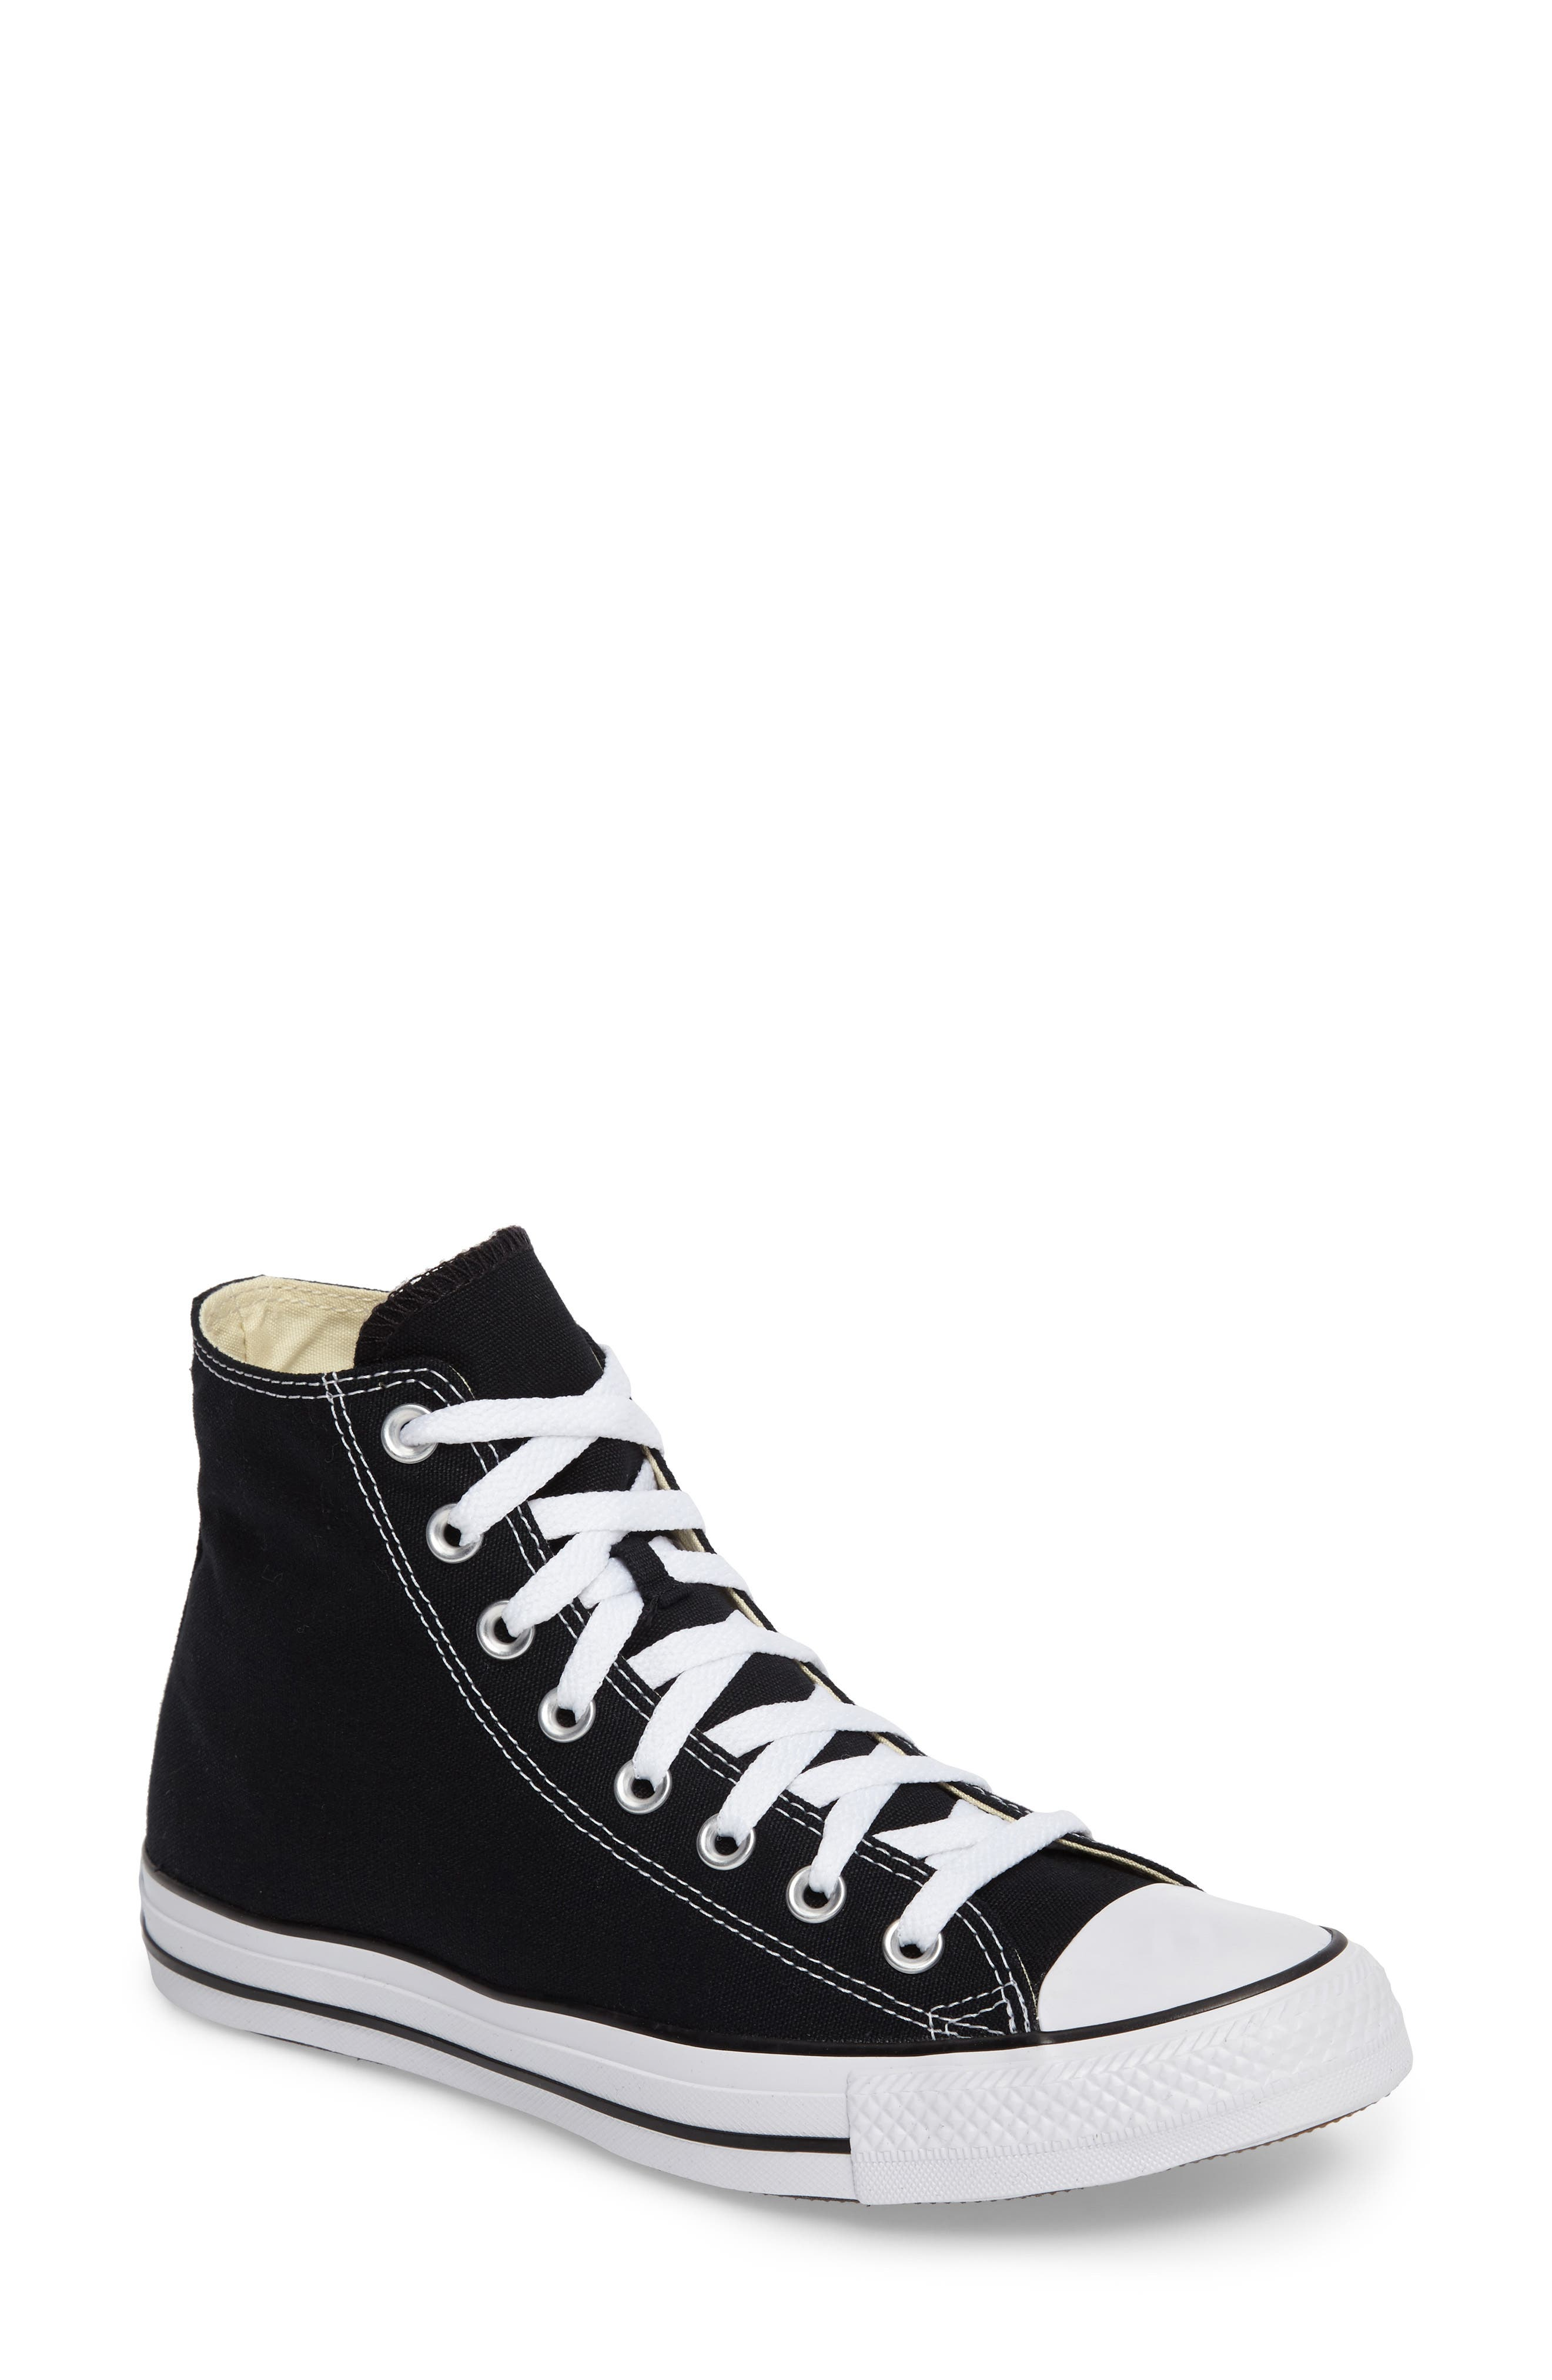 Chuck Taylor® High Top Sneaker by Converse, available on nordstrom.com for $60 Kaia Gerber Shoes Exact Product